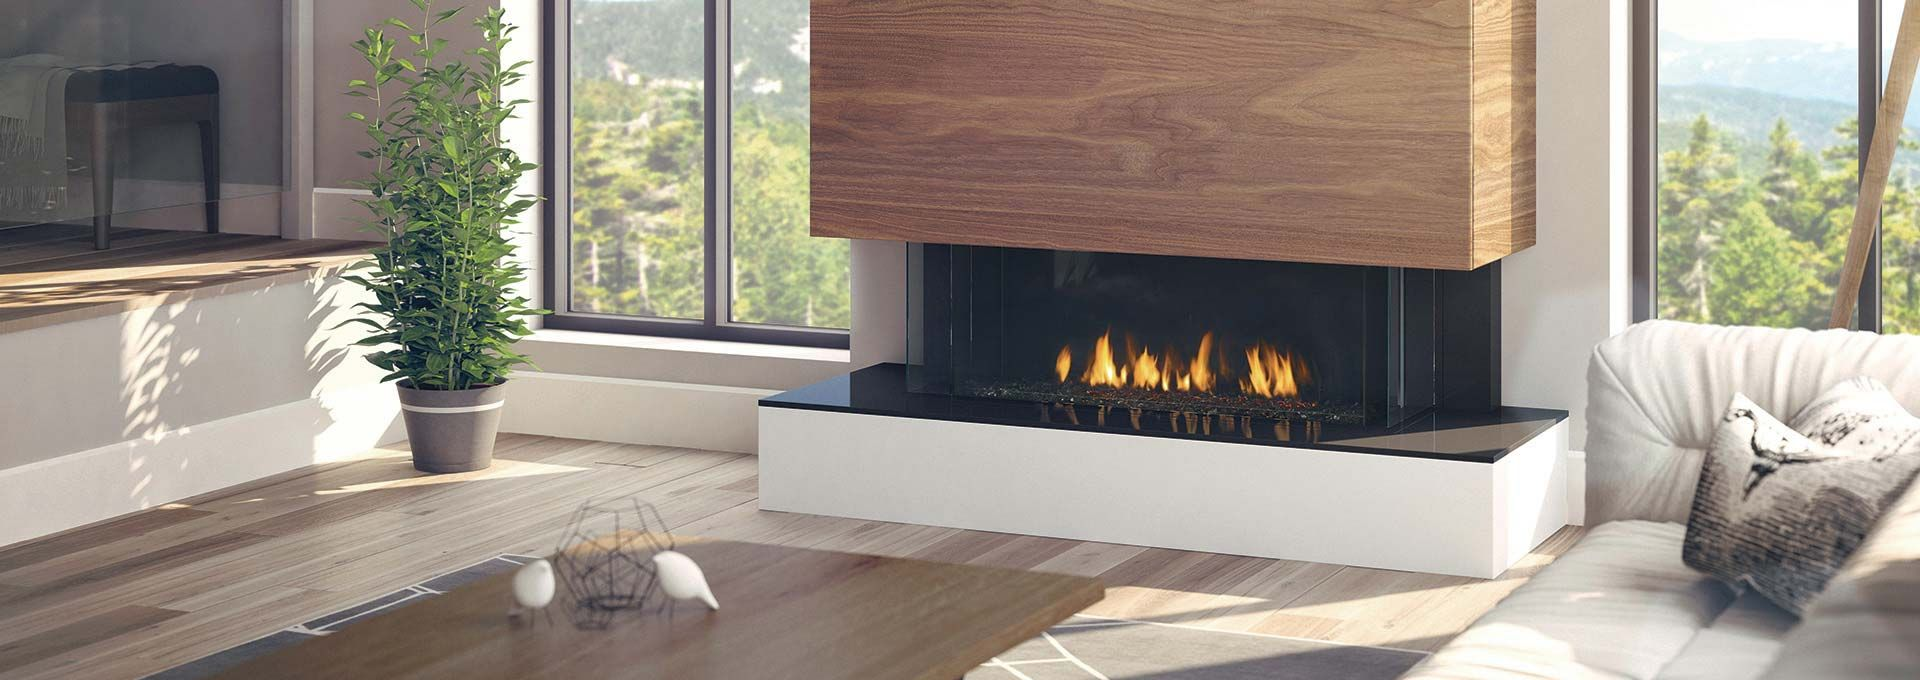 Use Any Finishing Material Right To The Edge Of The Fireplace